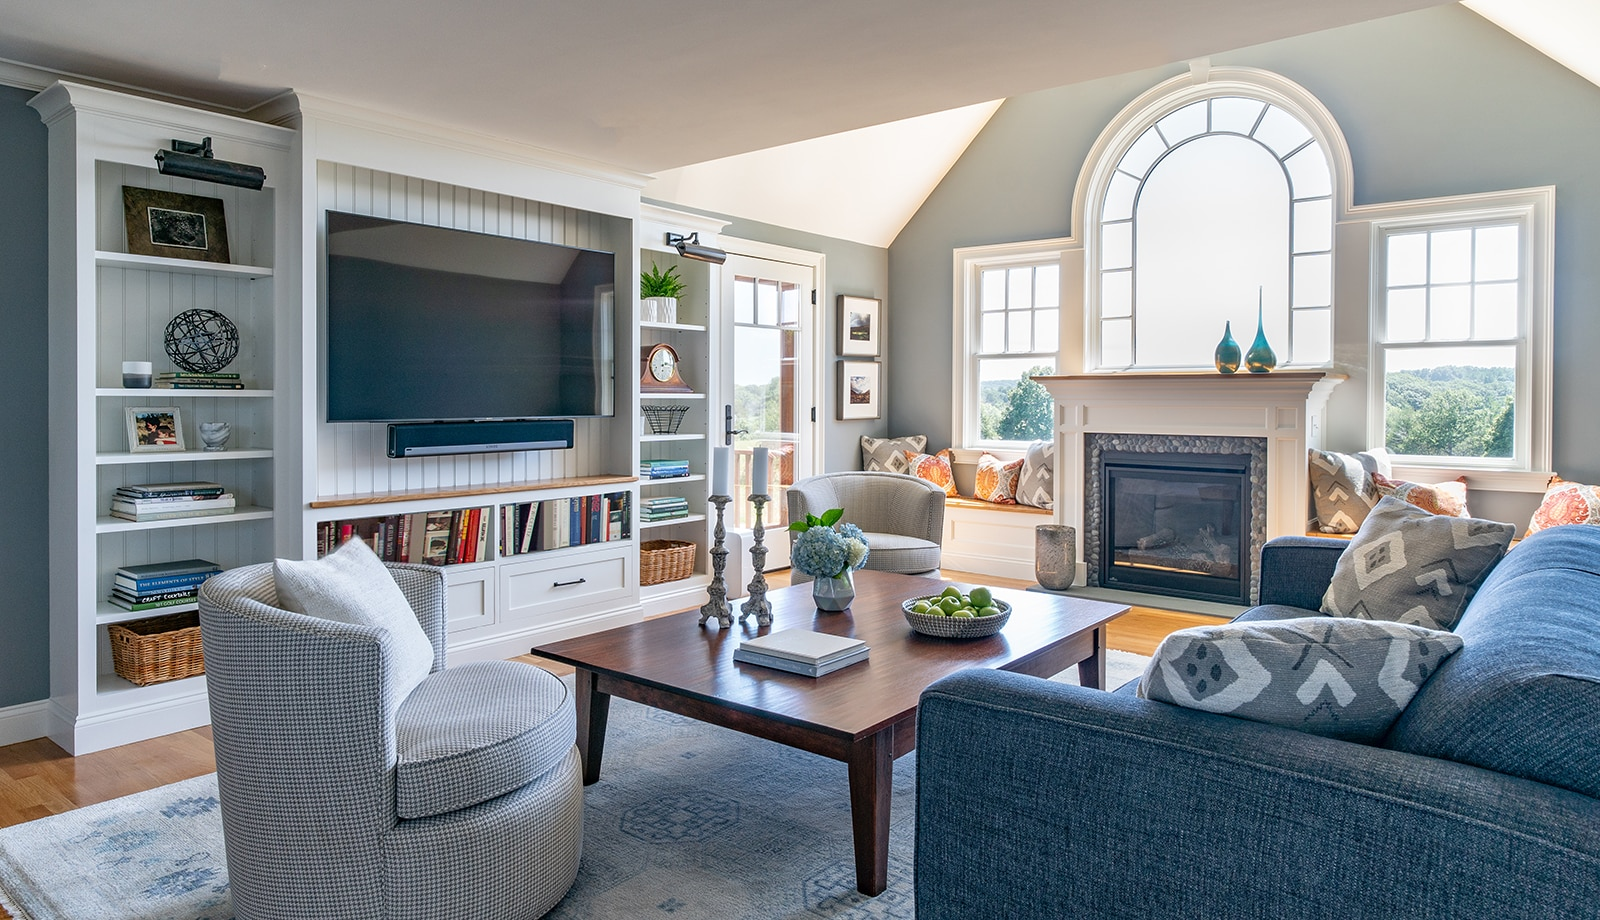 Cape Style Home Interiors Ipswich MA Living Room featured